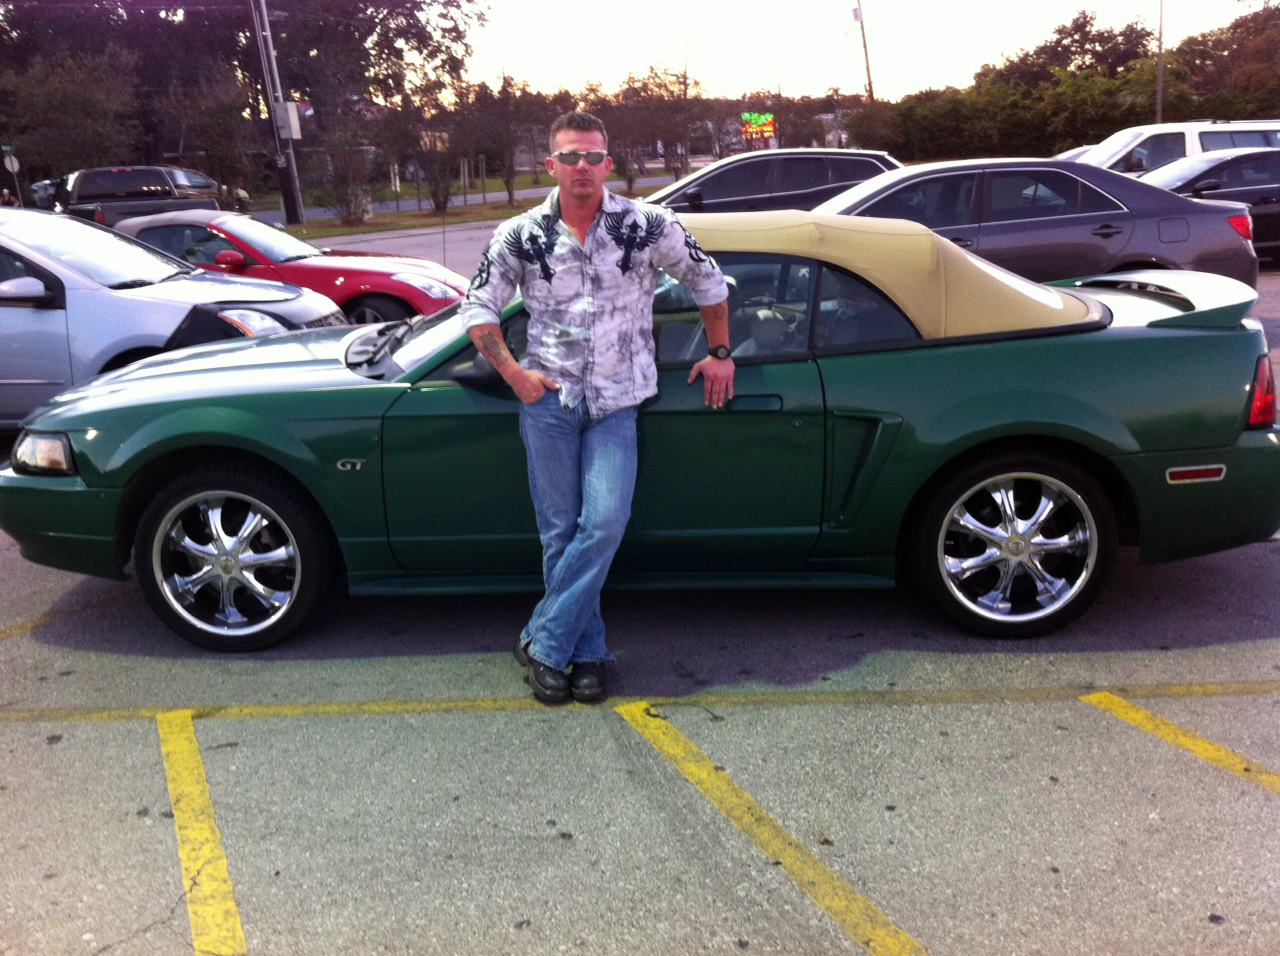 Ronnie Rokk Smith by his Mustang GT